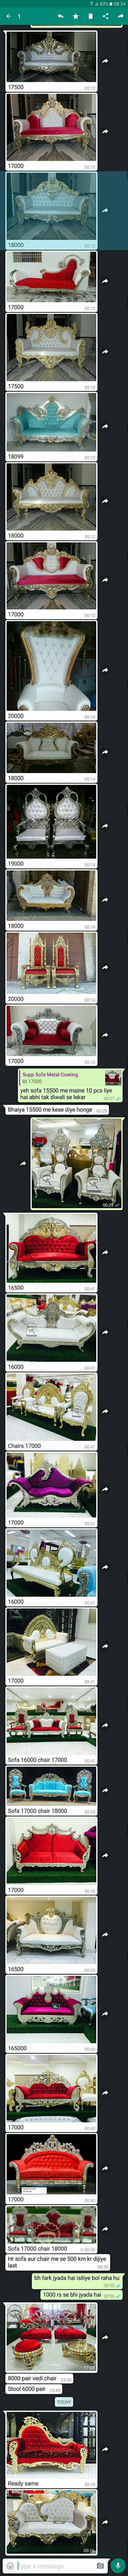 Carving Sofas Joinery Couches Canapes Settees Sculptures